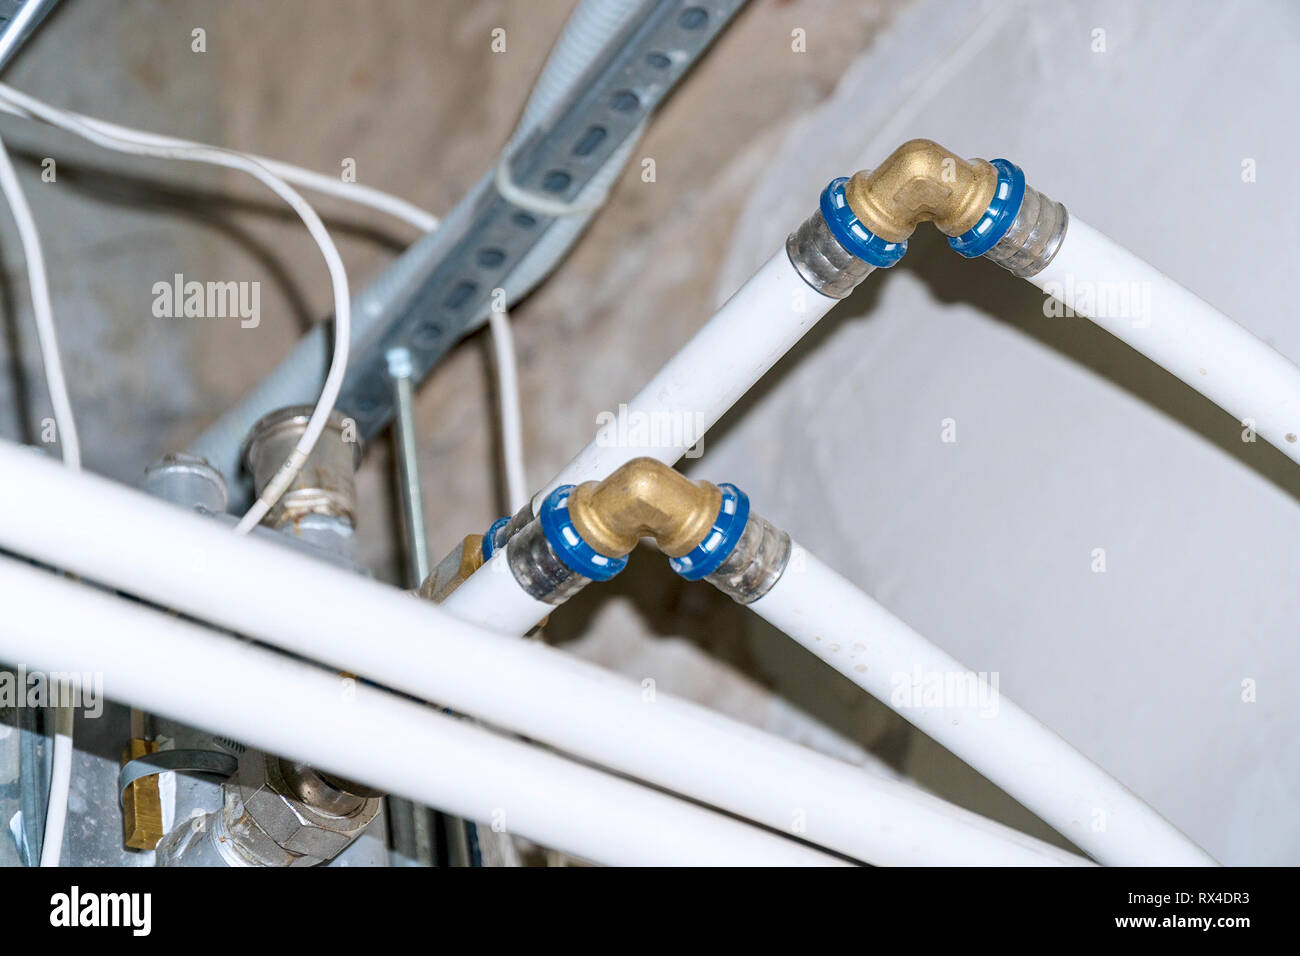 Connection of plastic pipes through fittings - Stock Image